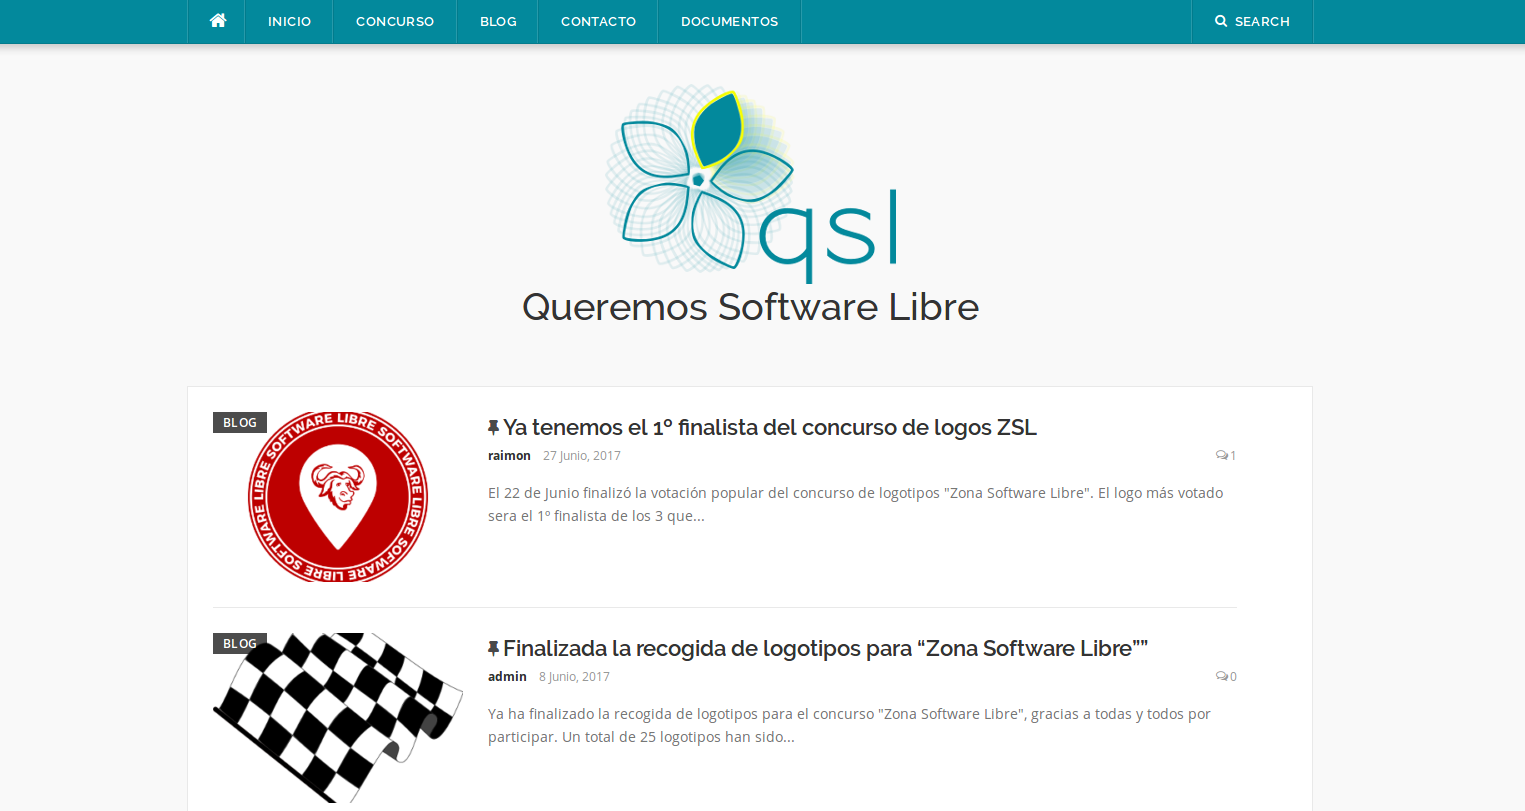 Queremos Software Libre